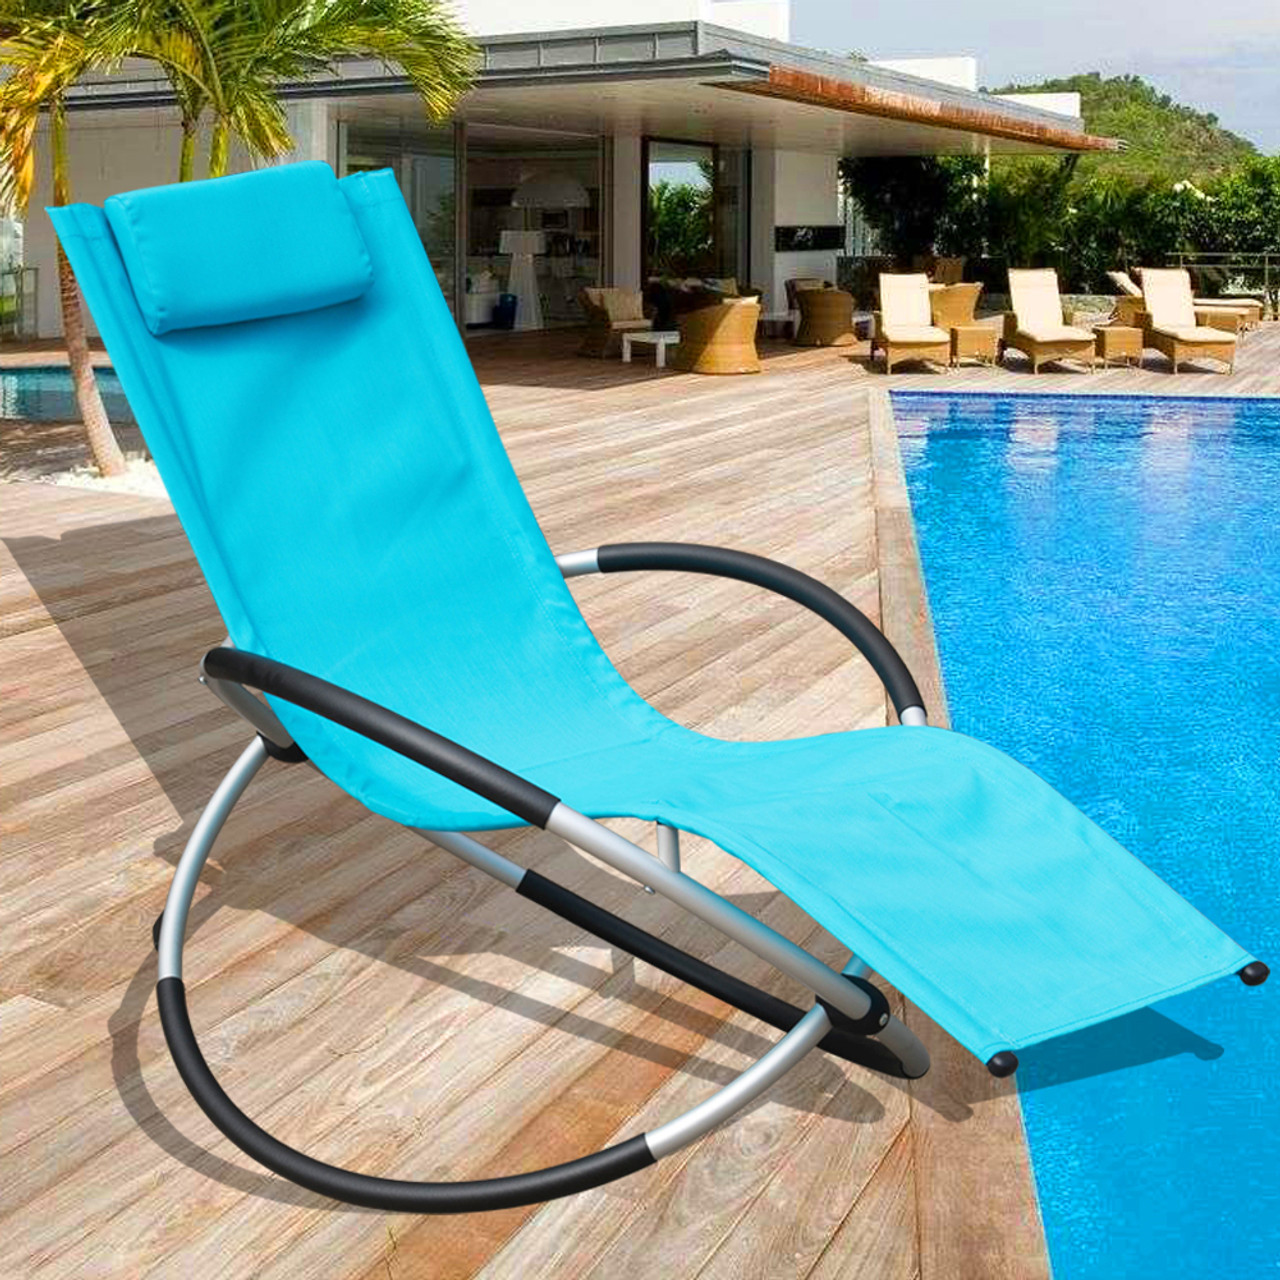 Sundale Outdoor Orbital Zero Gravity Folding Rocking Patio Lounge Chair with PillowCapacity 250 Pounds : chaise lounge folding - Sectionals, Sofas & Couches